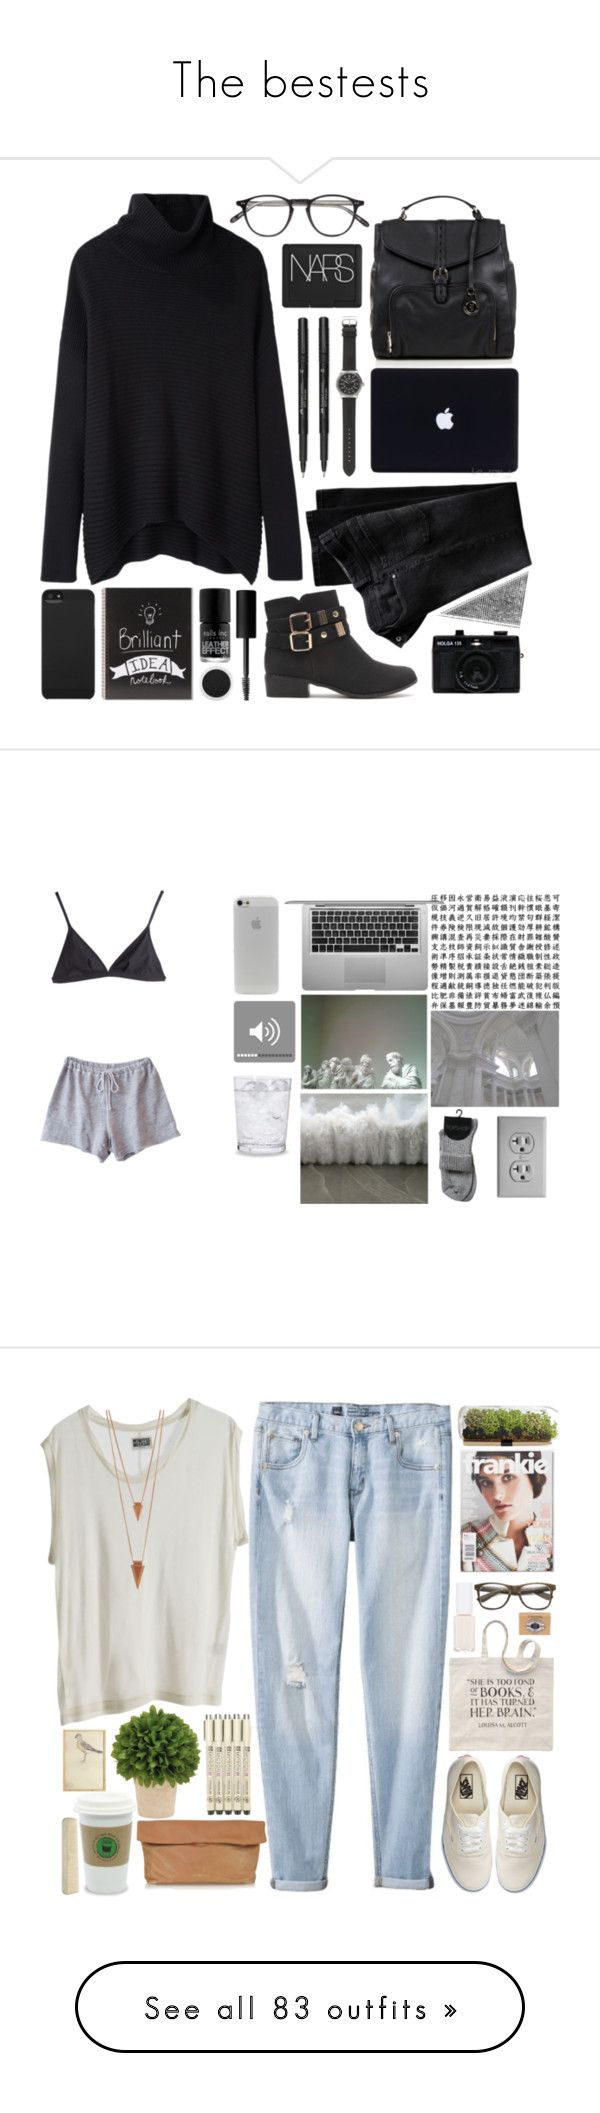 """""""The bestests"""" by running-away-for-adventures ❤ liked on Polyvore featuring Helmut Lang, Black Poppy, J.Crew, Garrett Leight, Betty Jackson, Faber-Castell, Incase, NARS Cosmetics, Nails Inc. and Calypso St. Barth"""